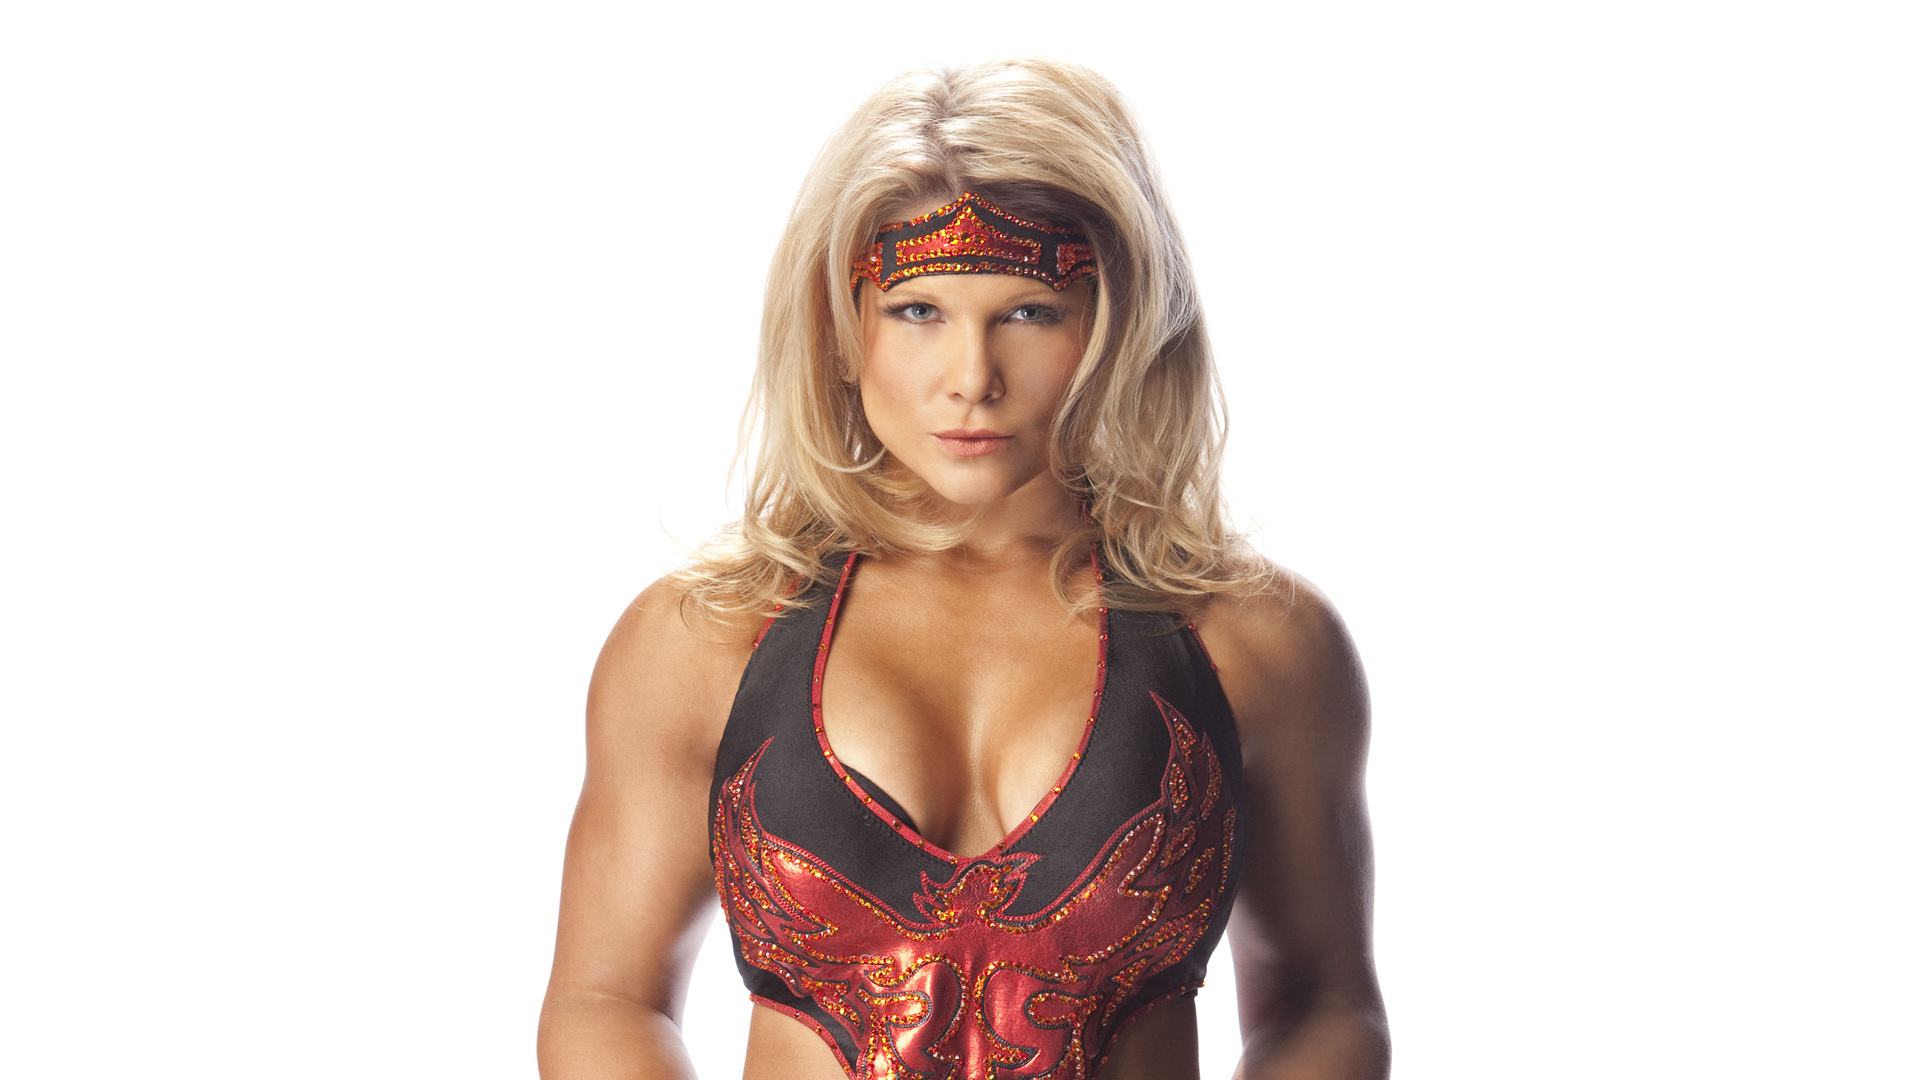 Beth phoenix wwe divas wallpaper 20701605 fanpop - Wwe divas wallpapers ...